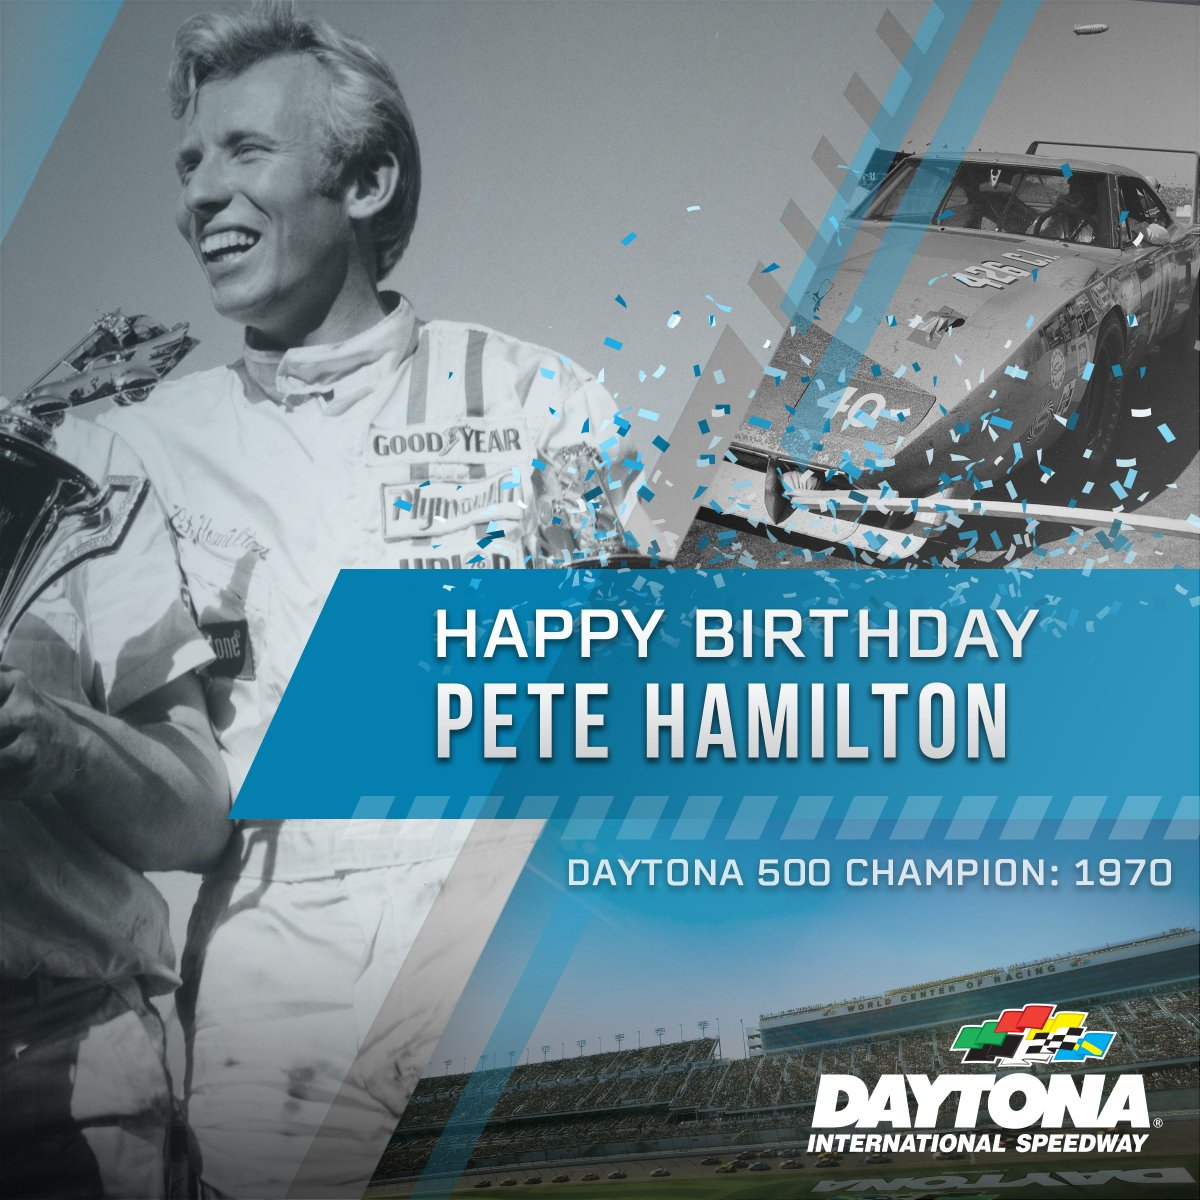 Happy Birthday to the 1970 #DAYTONA500 Champion, the late Pete Hamilton.